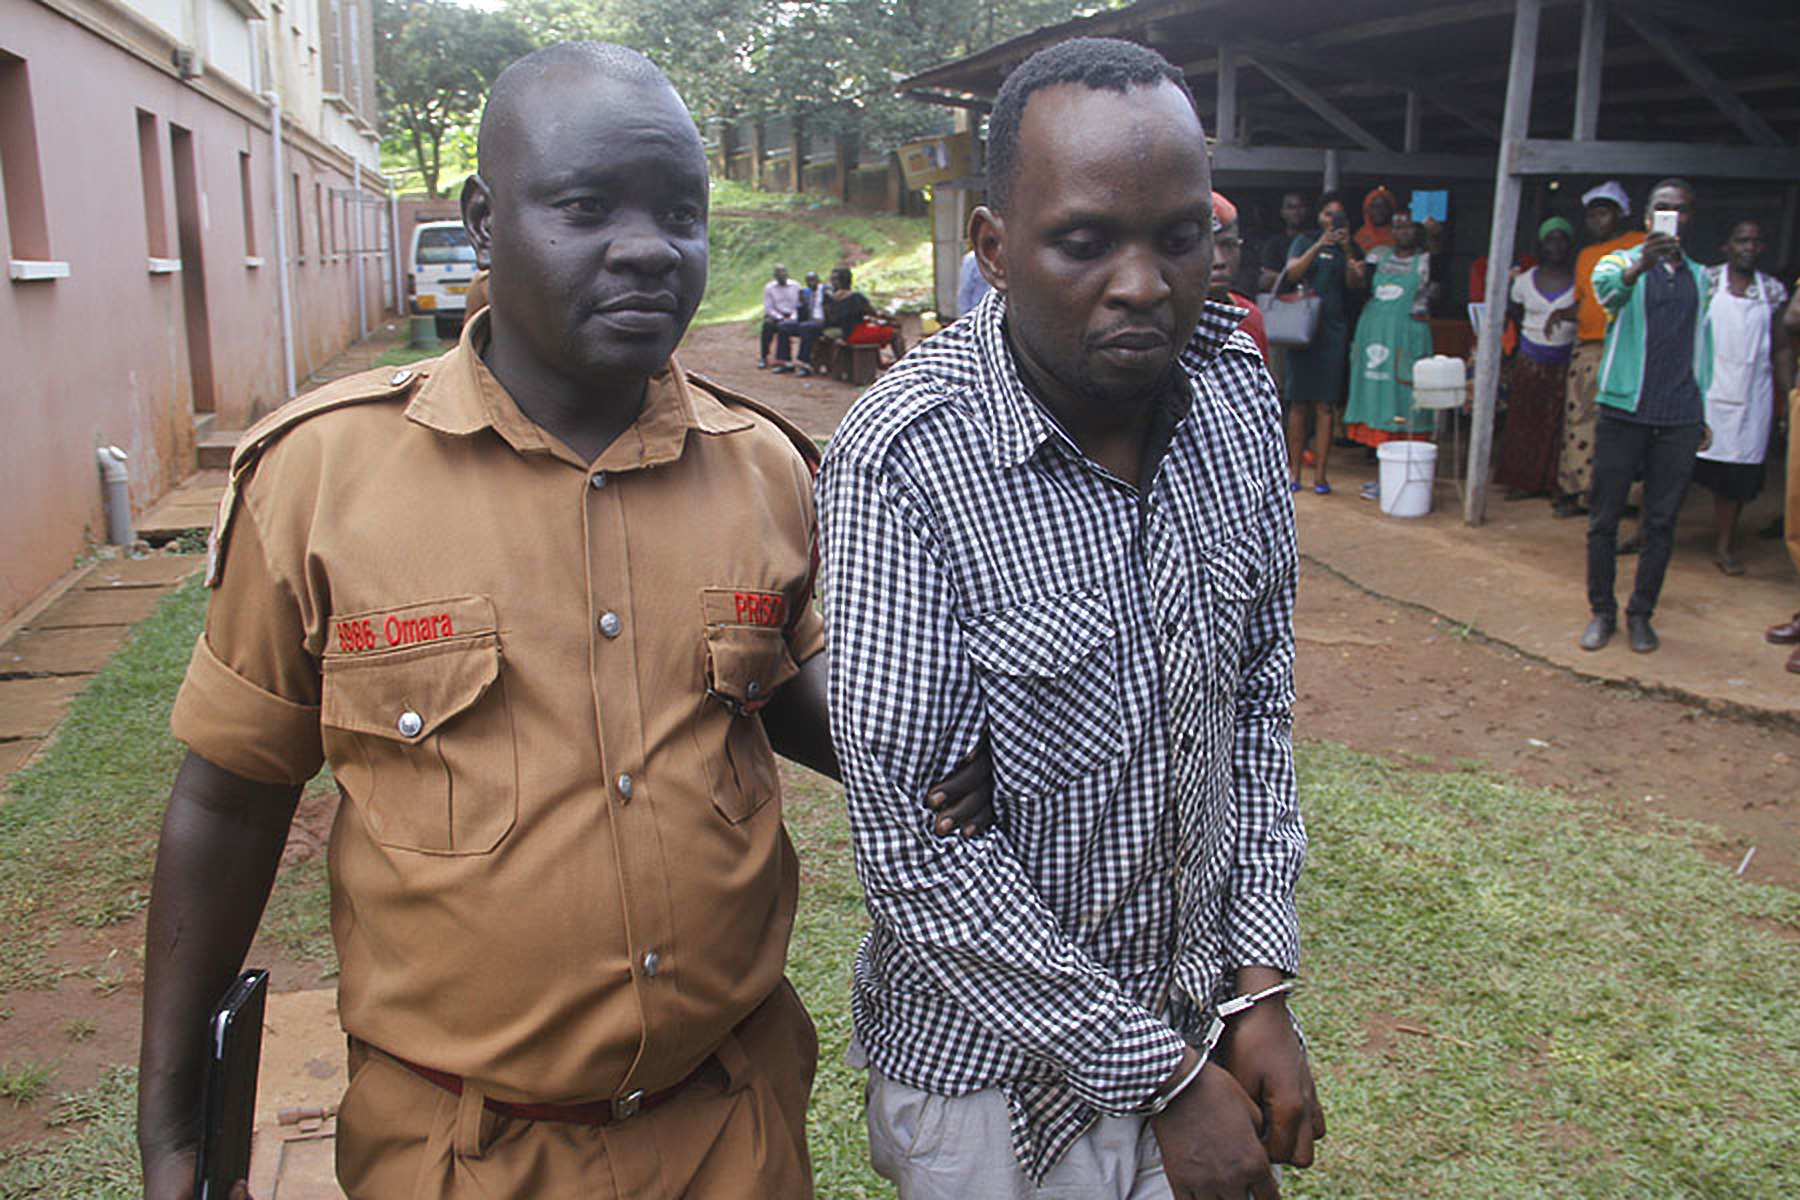 A prison warder leads Kaddu to the prison bus after his past appearance in court